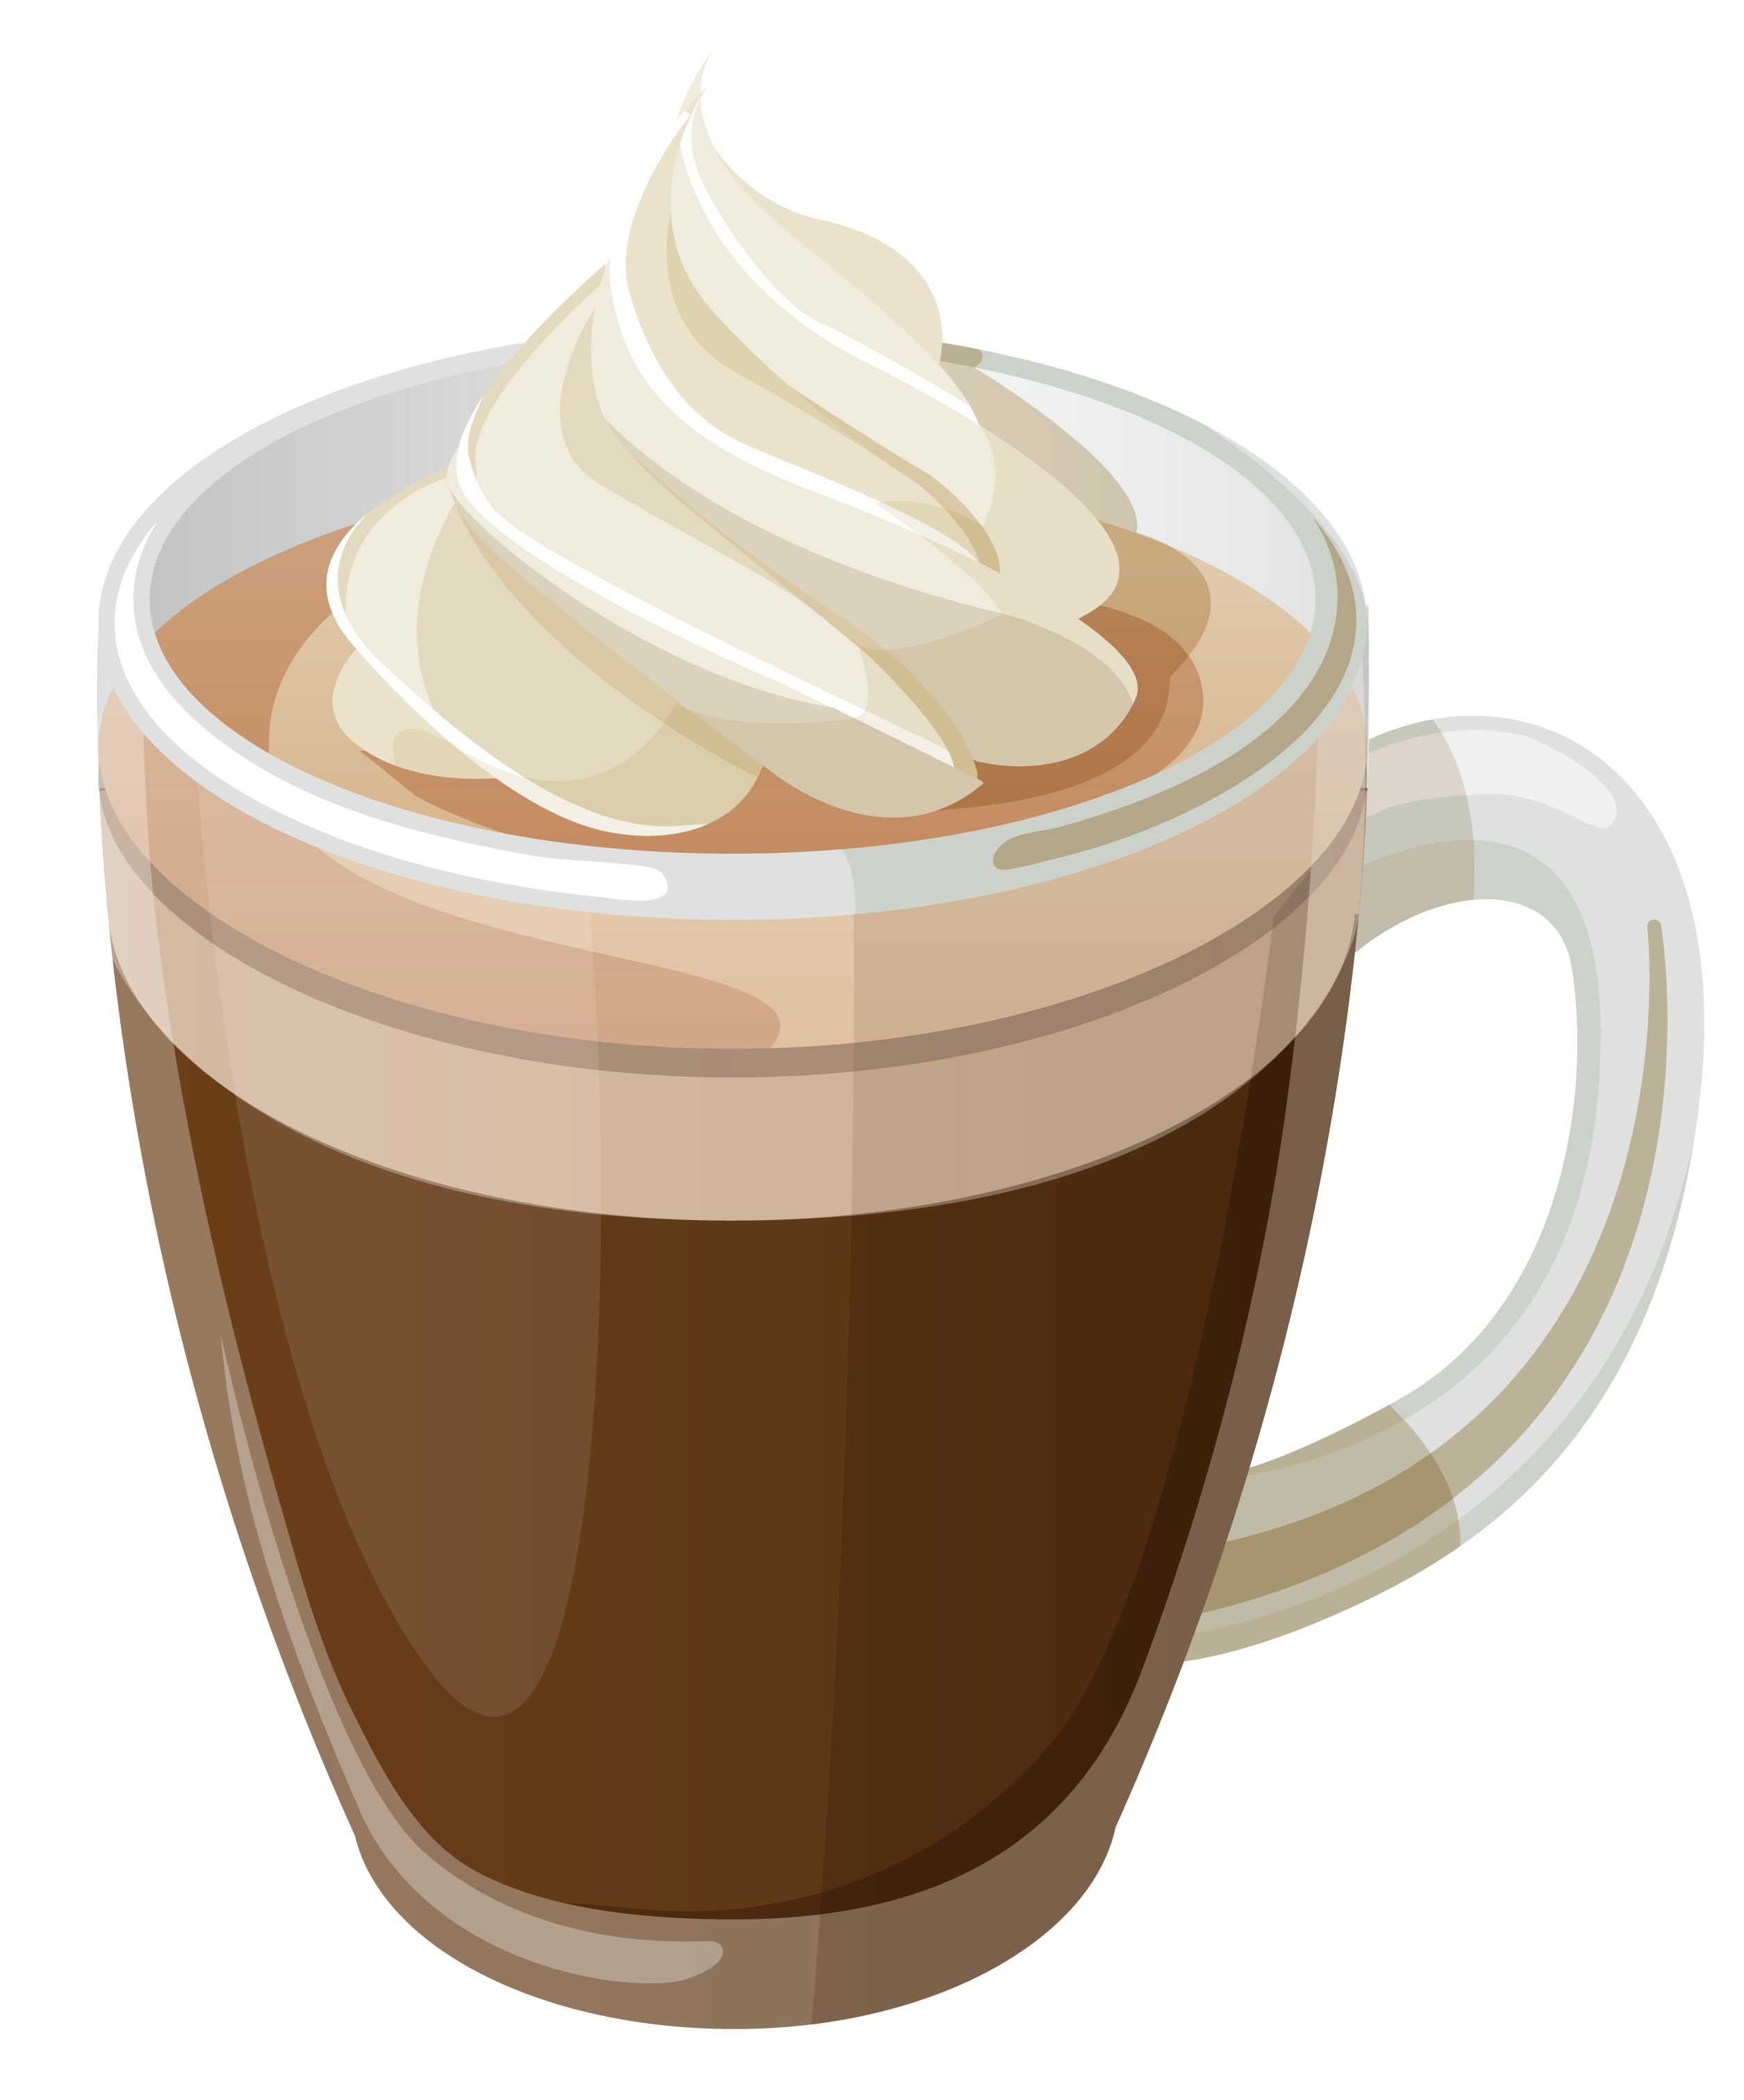 vector royalty free download Coffee clipart free. Cream and